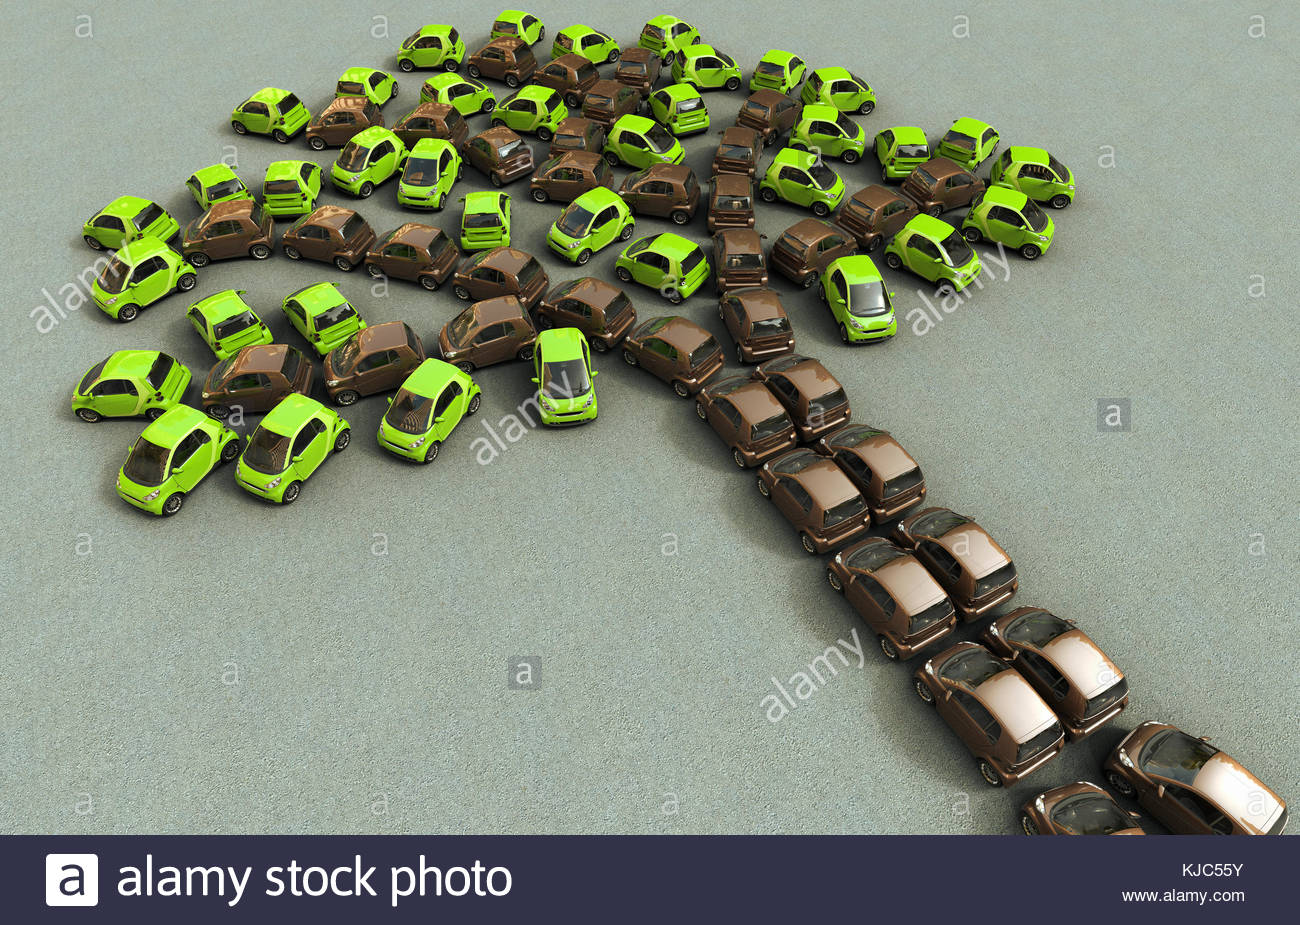 Eco cars parked forming the shape of a tree - Stock Image